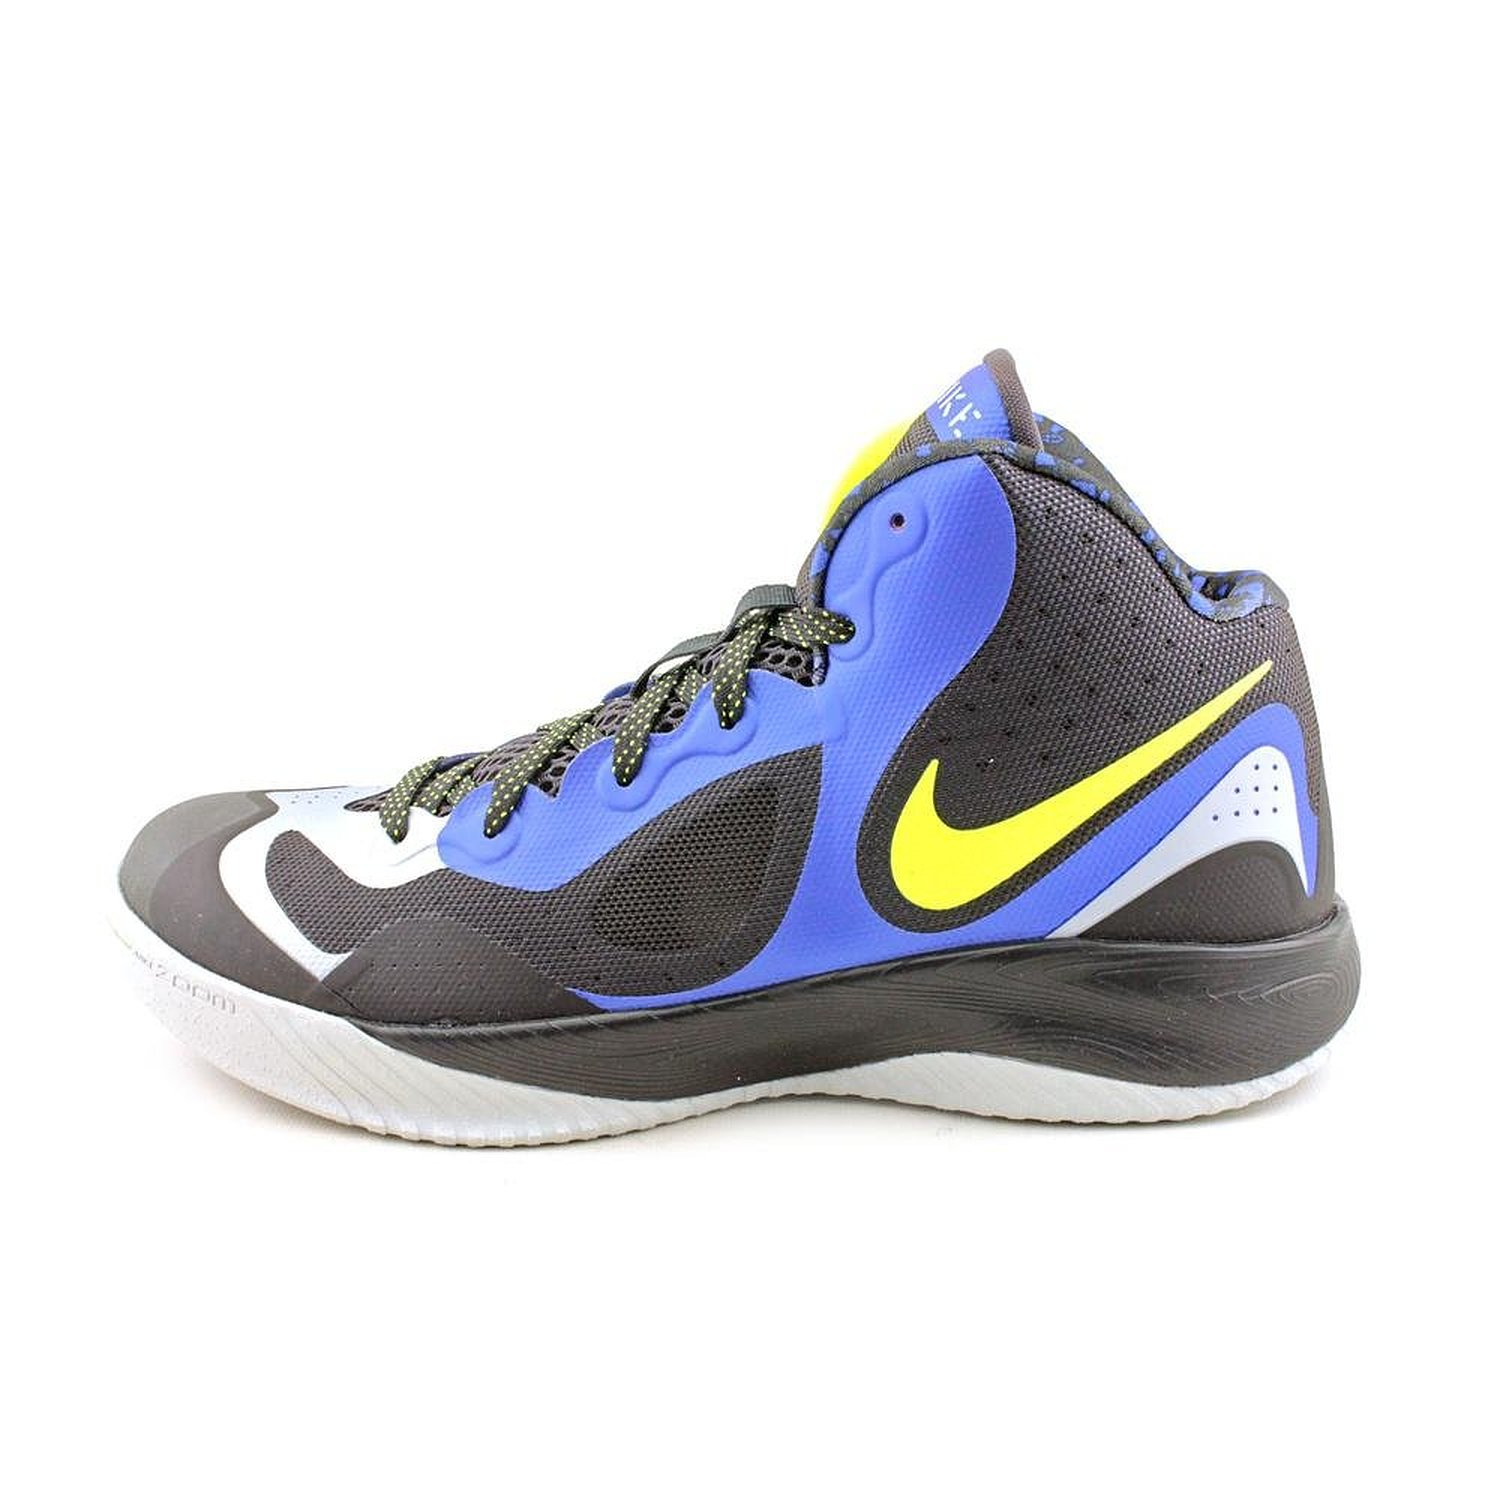 nike womens basketball shoes shipped free at zappos